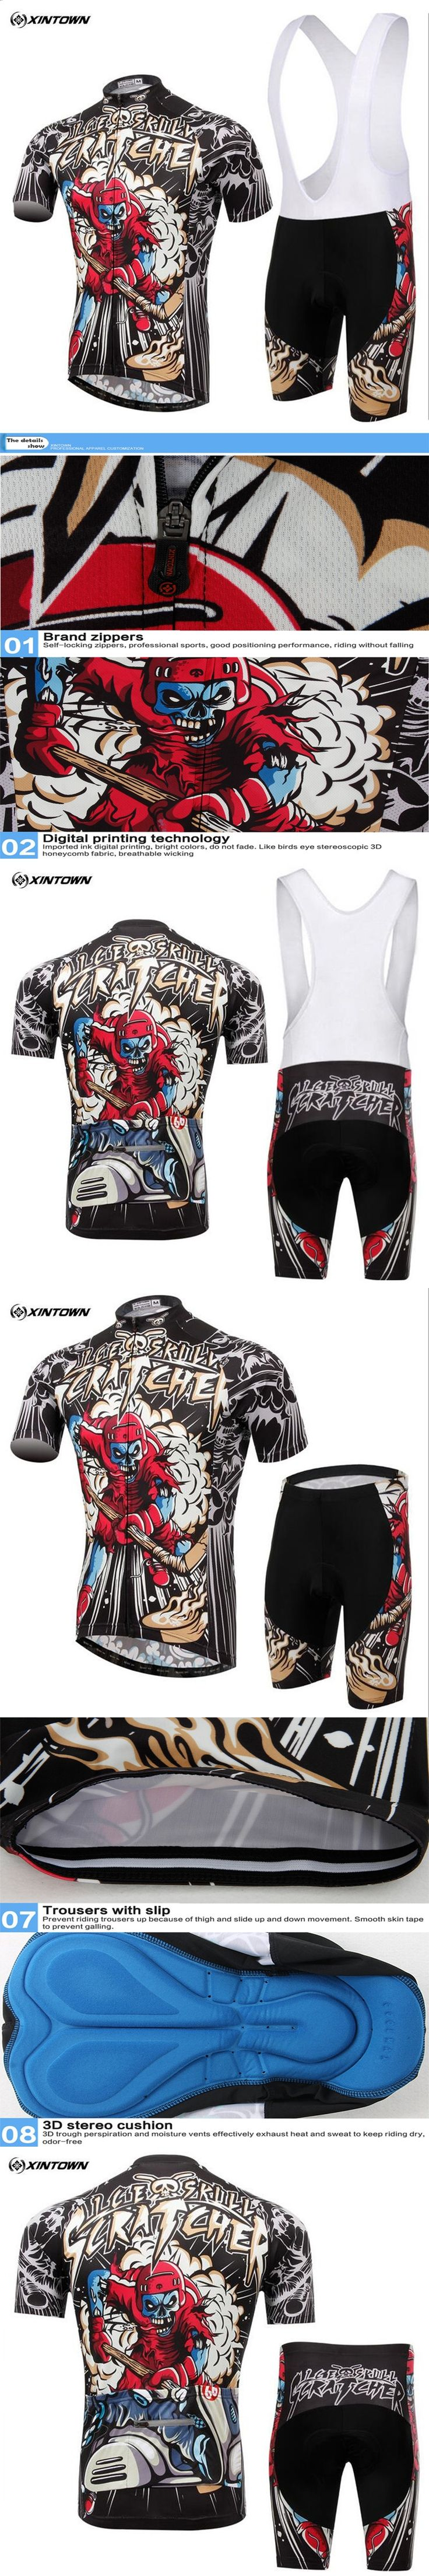 2017 Summer Skeleton Soldier Cycling clothes Cycling Jersey set Mountain Bicycle Wear Racing Bike Clothing Ropa Conjunto